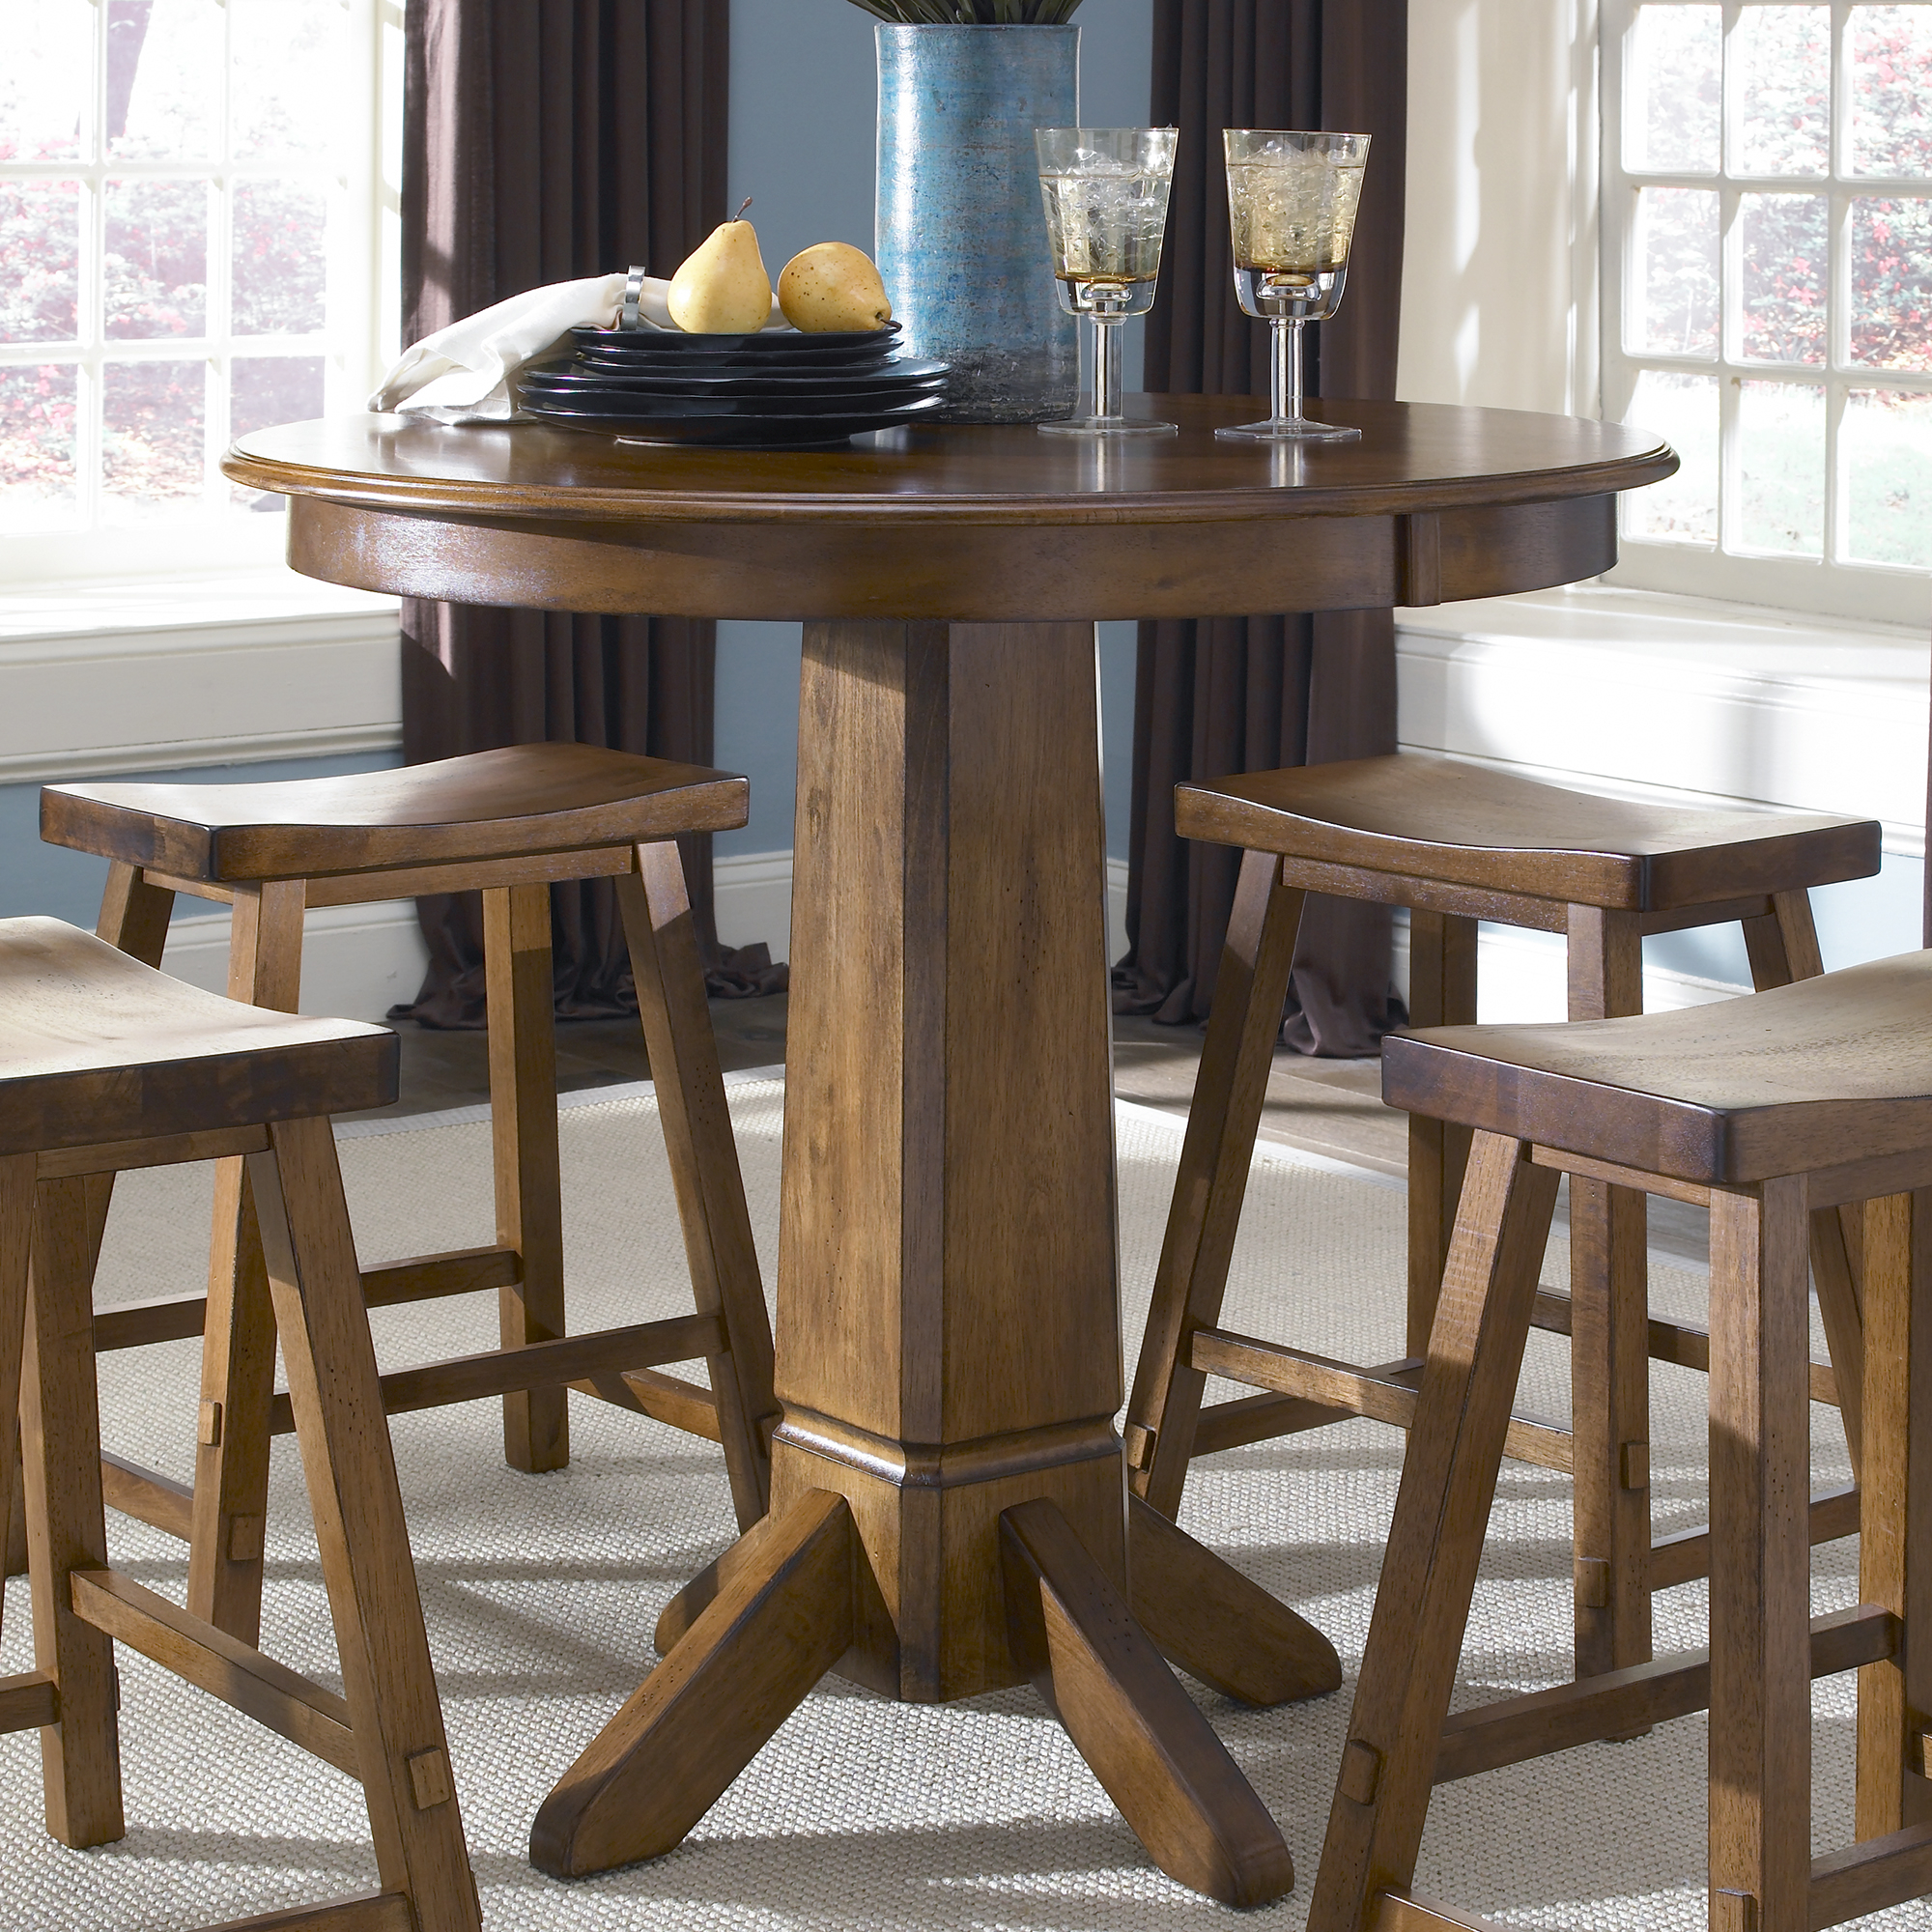 Superbe Tall Pub Table And Chairs